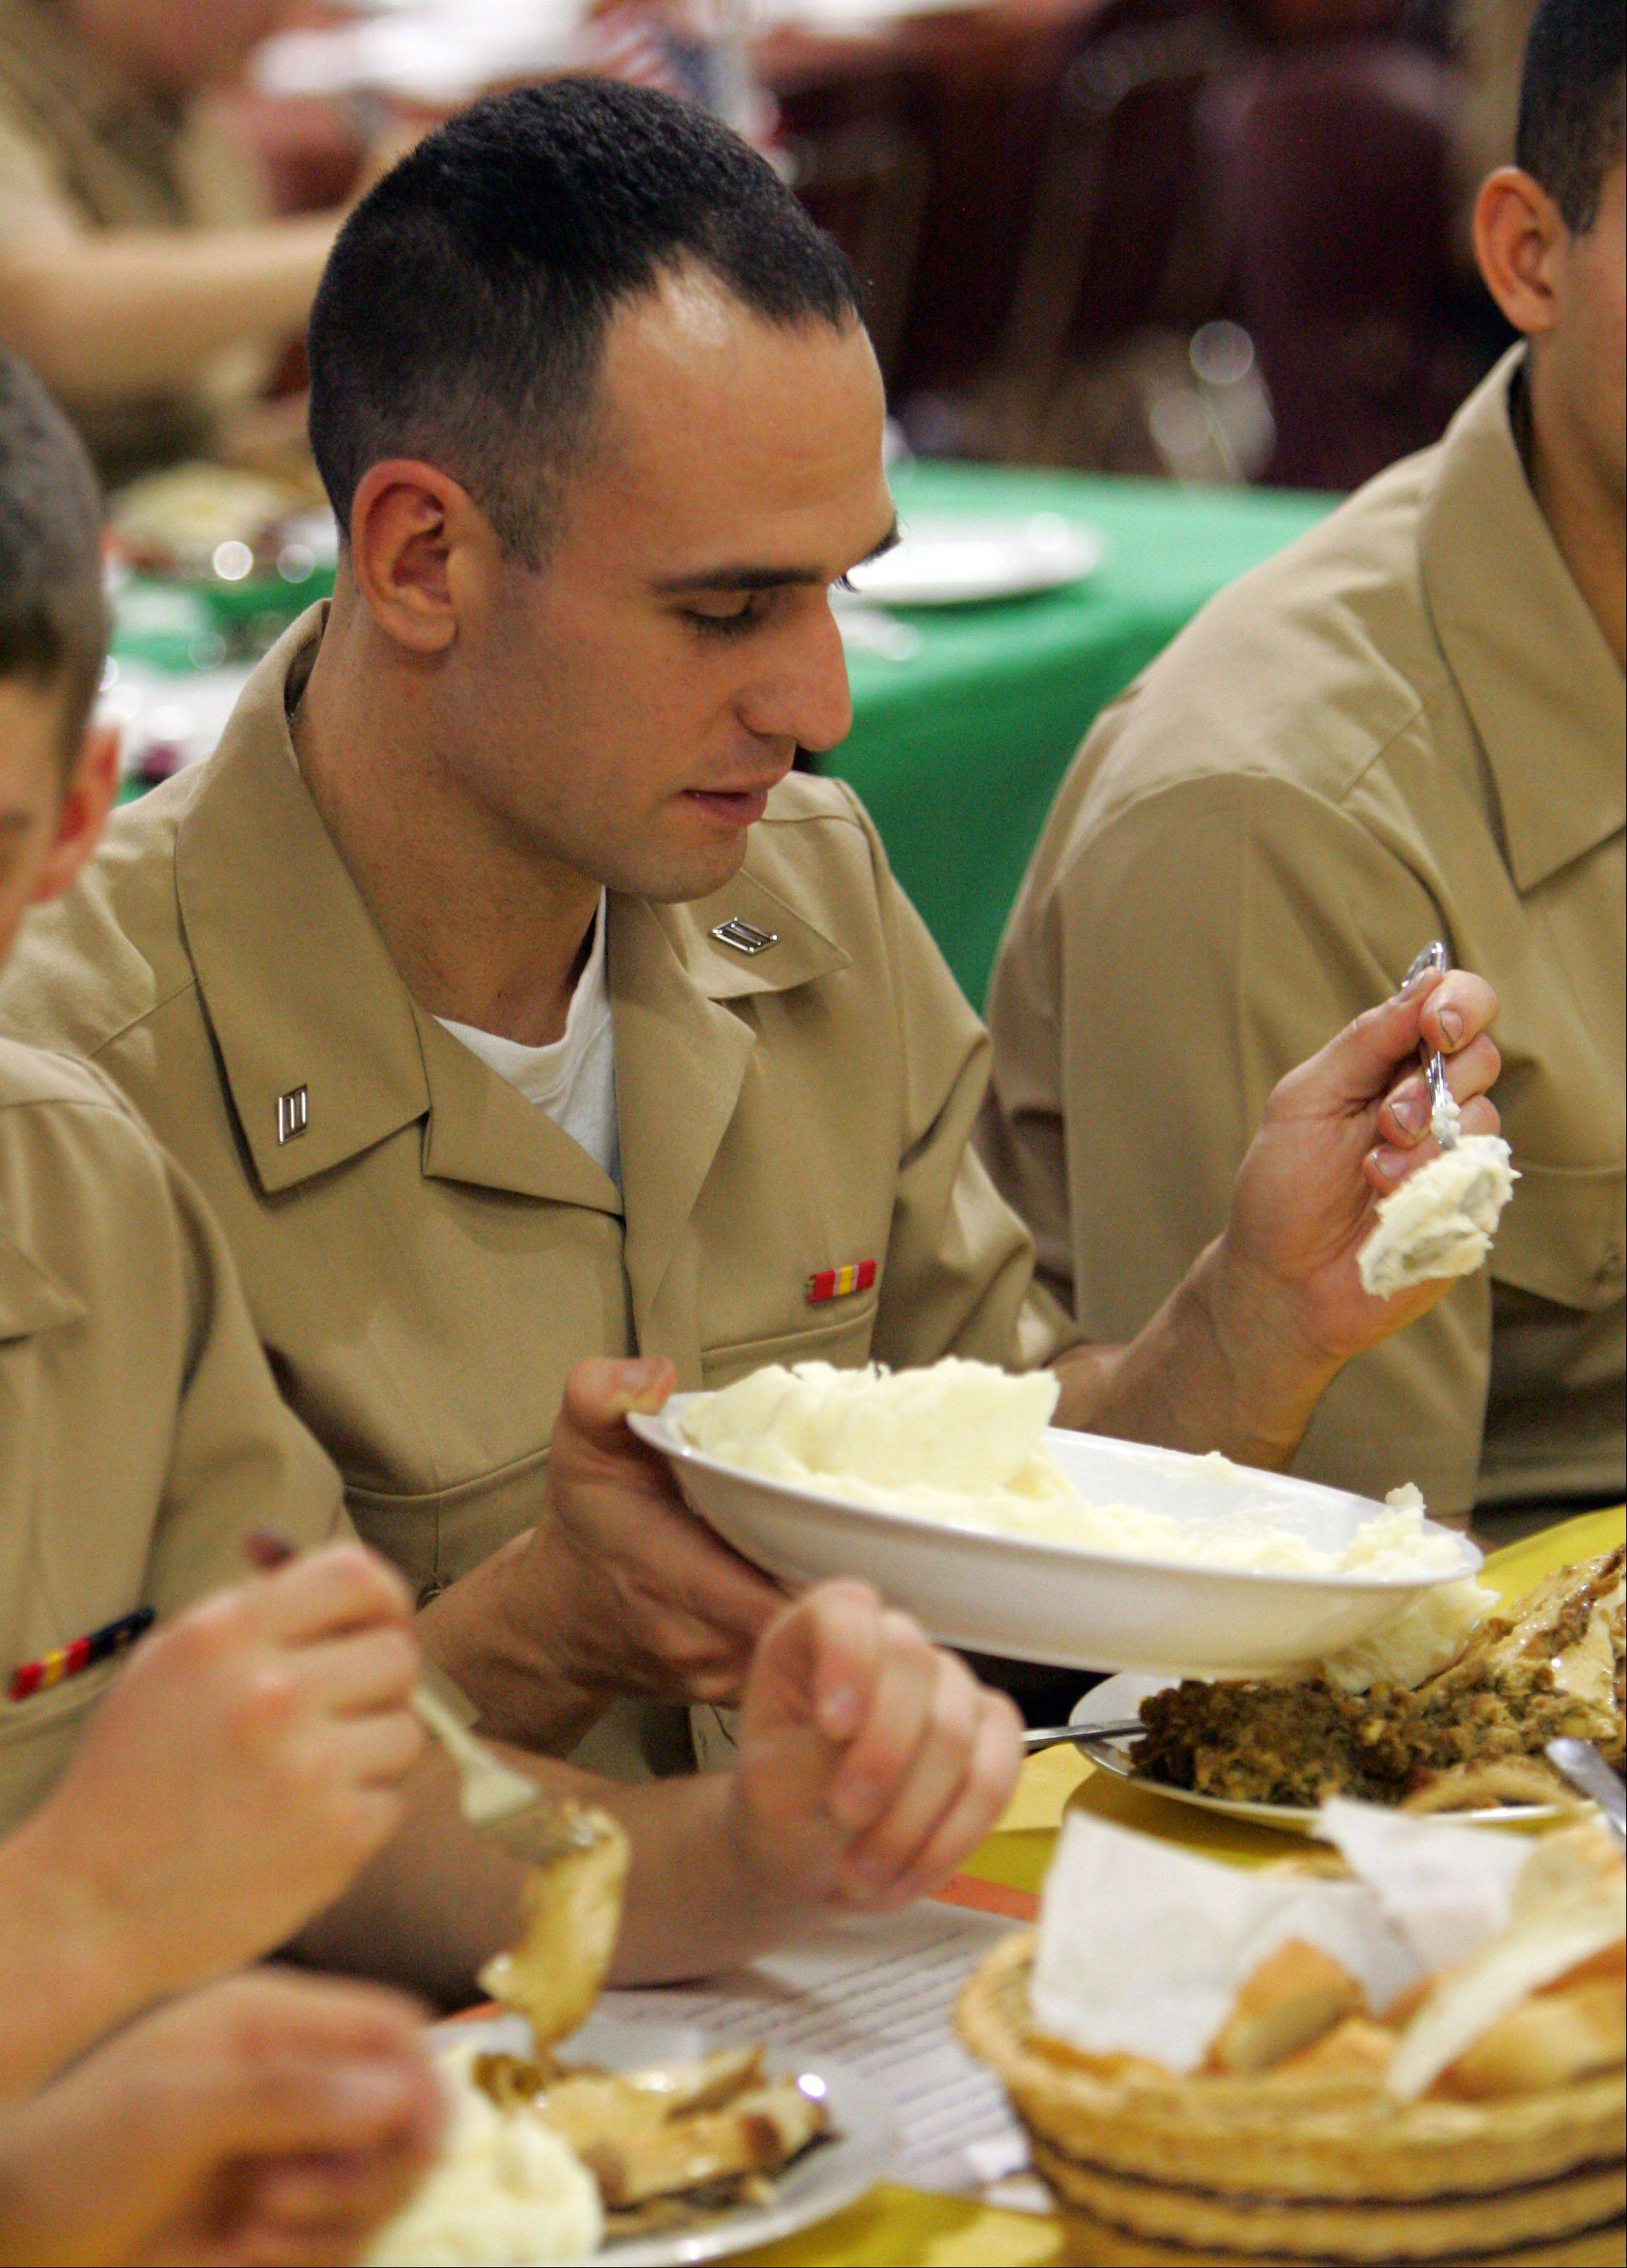 Seaman Recruit Gur Yilmaz of Newark, New Jersey serves himself some mashed potatoes as the Gurnee Community Church hosted 182 sailors from Recruit Training Command, Great Lakes for their 10th annual Thanksgiving Day feast.